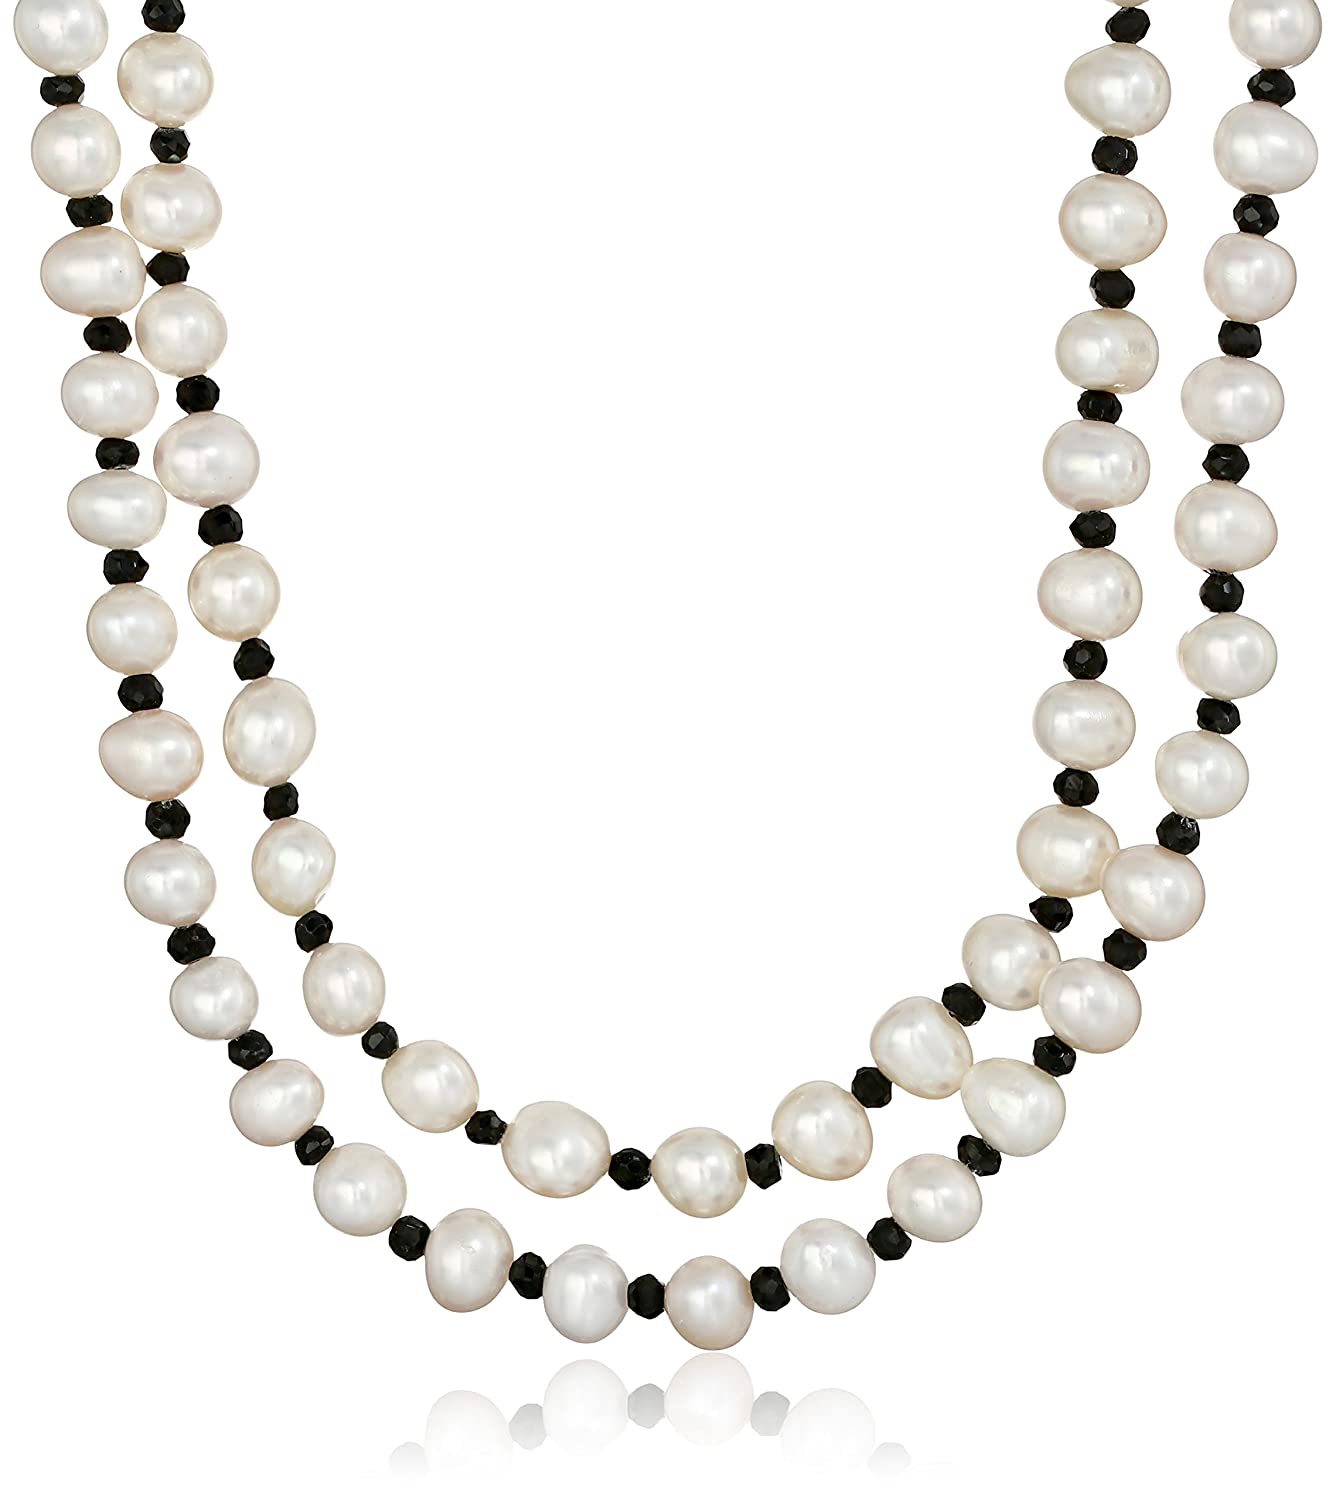 7-7.5mm White Cultured Freshwater Pearl with 4-5mm Gemstone Endless Strand Necklace, 50 50 Amazon Collection ND710-15-01